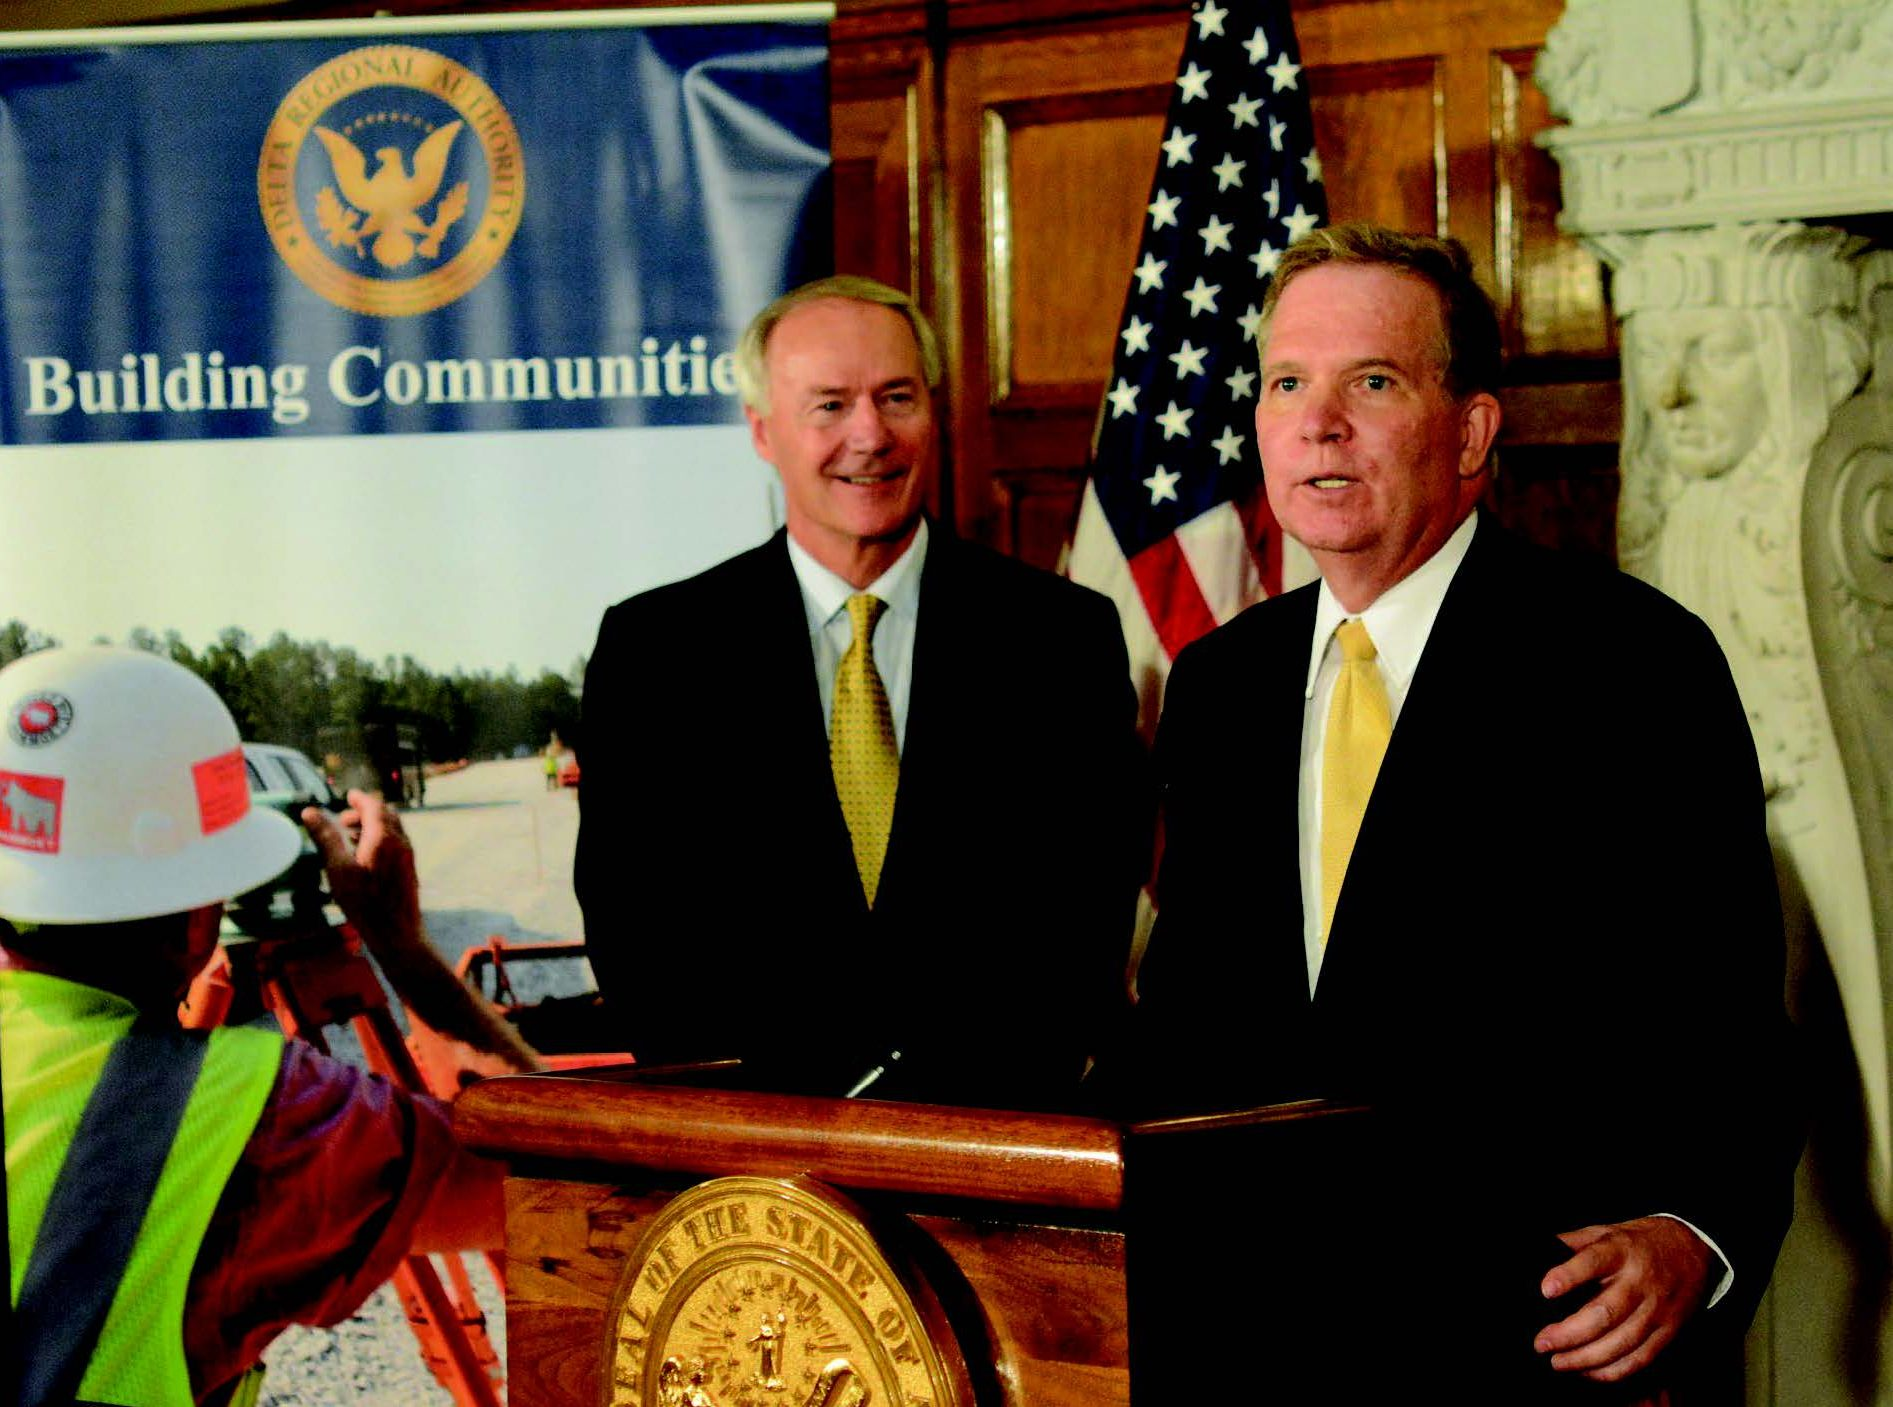 —Helena Harbor Helena Harbor port director John Edwards thanks Gov. Asa Hutchinson in 2017 for helping with a grant to the port as the governor looks on.